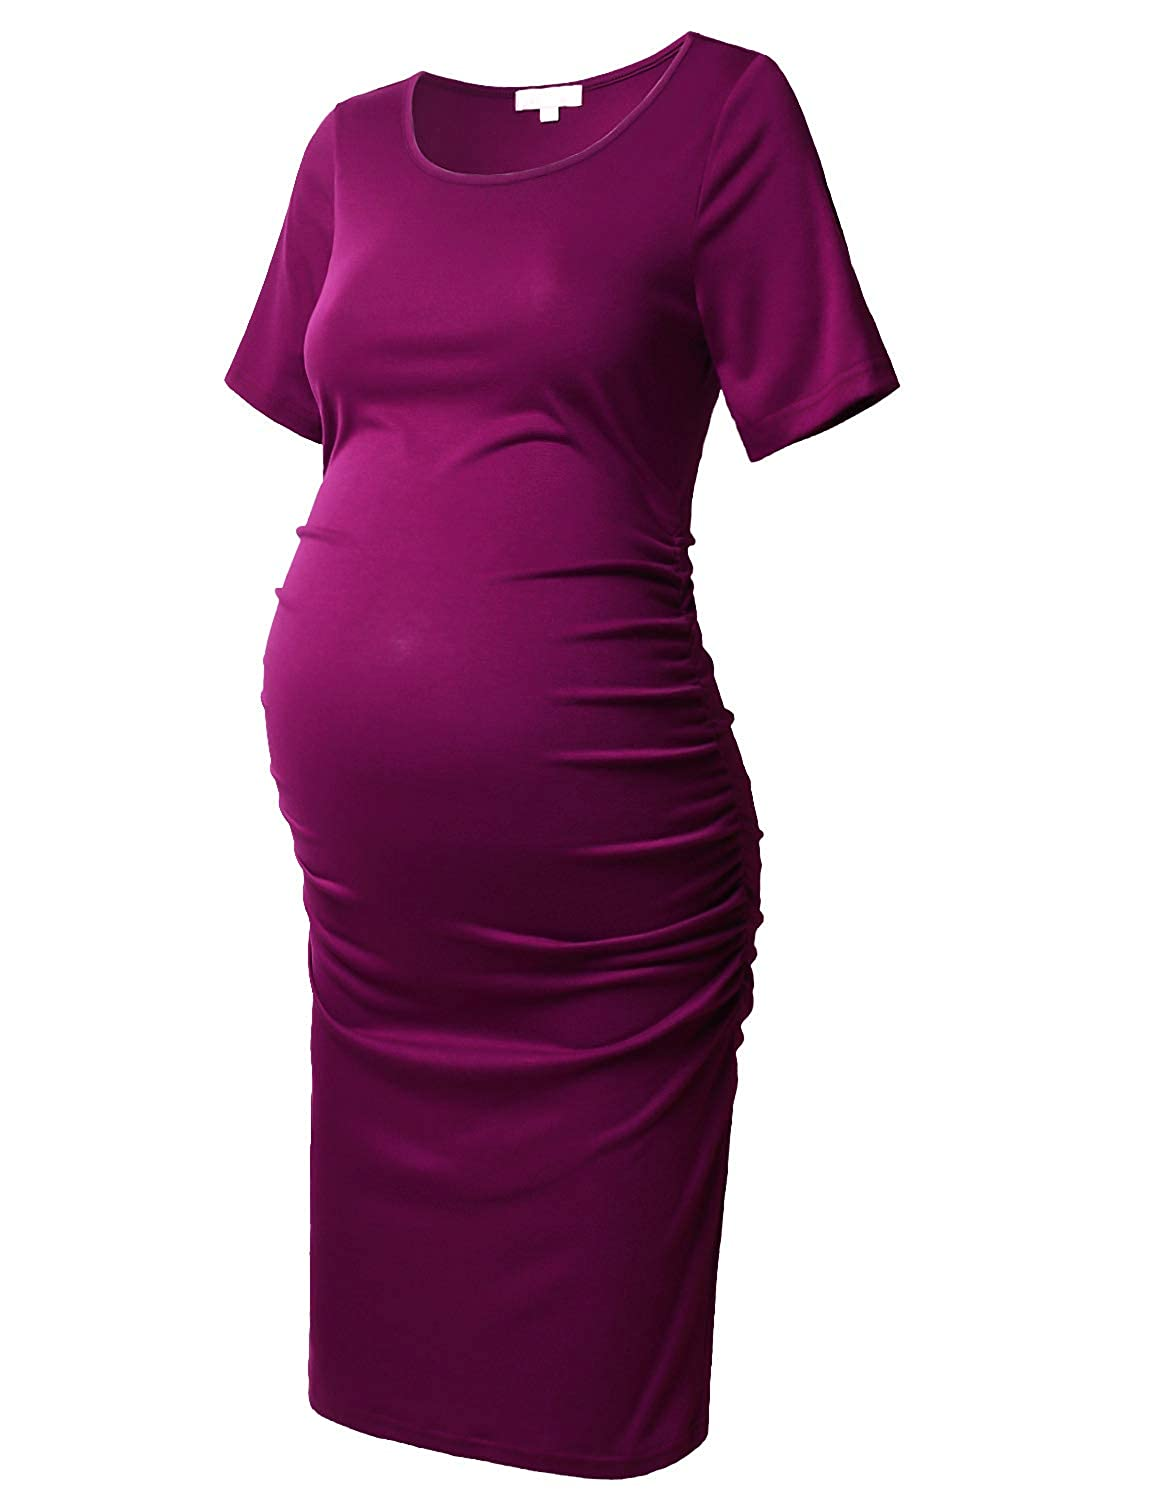 Purple   Red Maternity Bodycon Dress Short Sleeve Ruched Sides Knee Length Shirred Dress